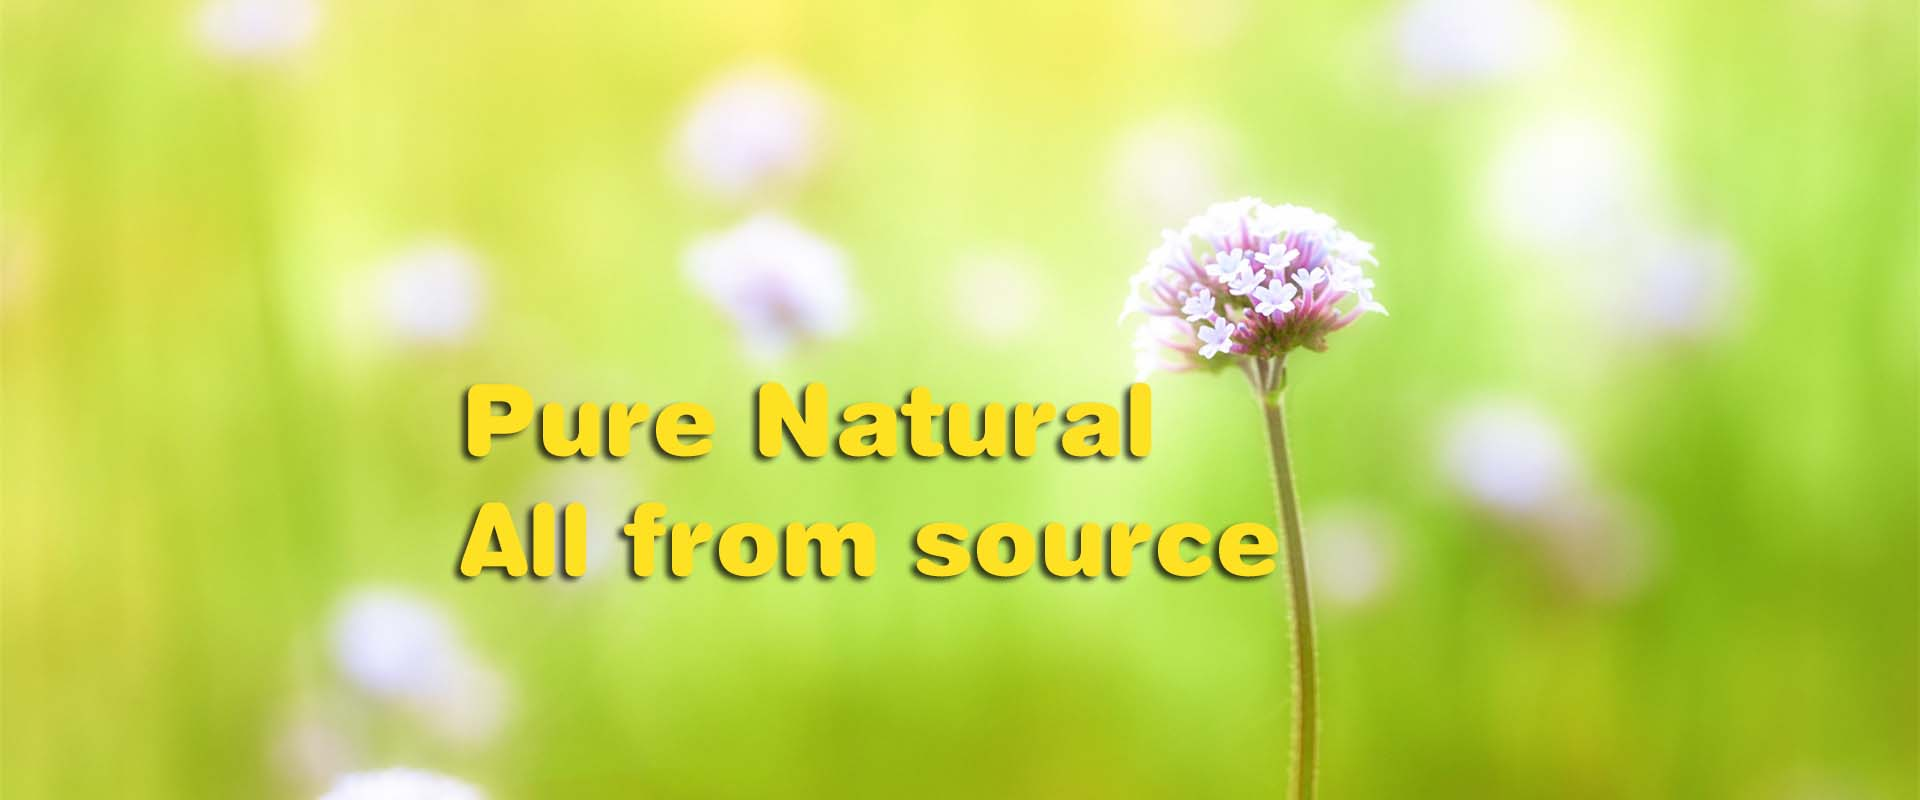 pure natural all from source